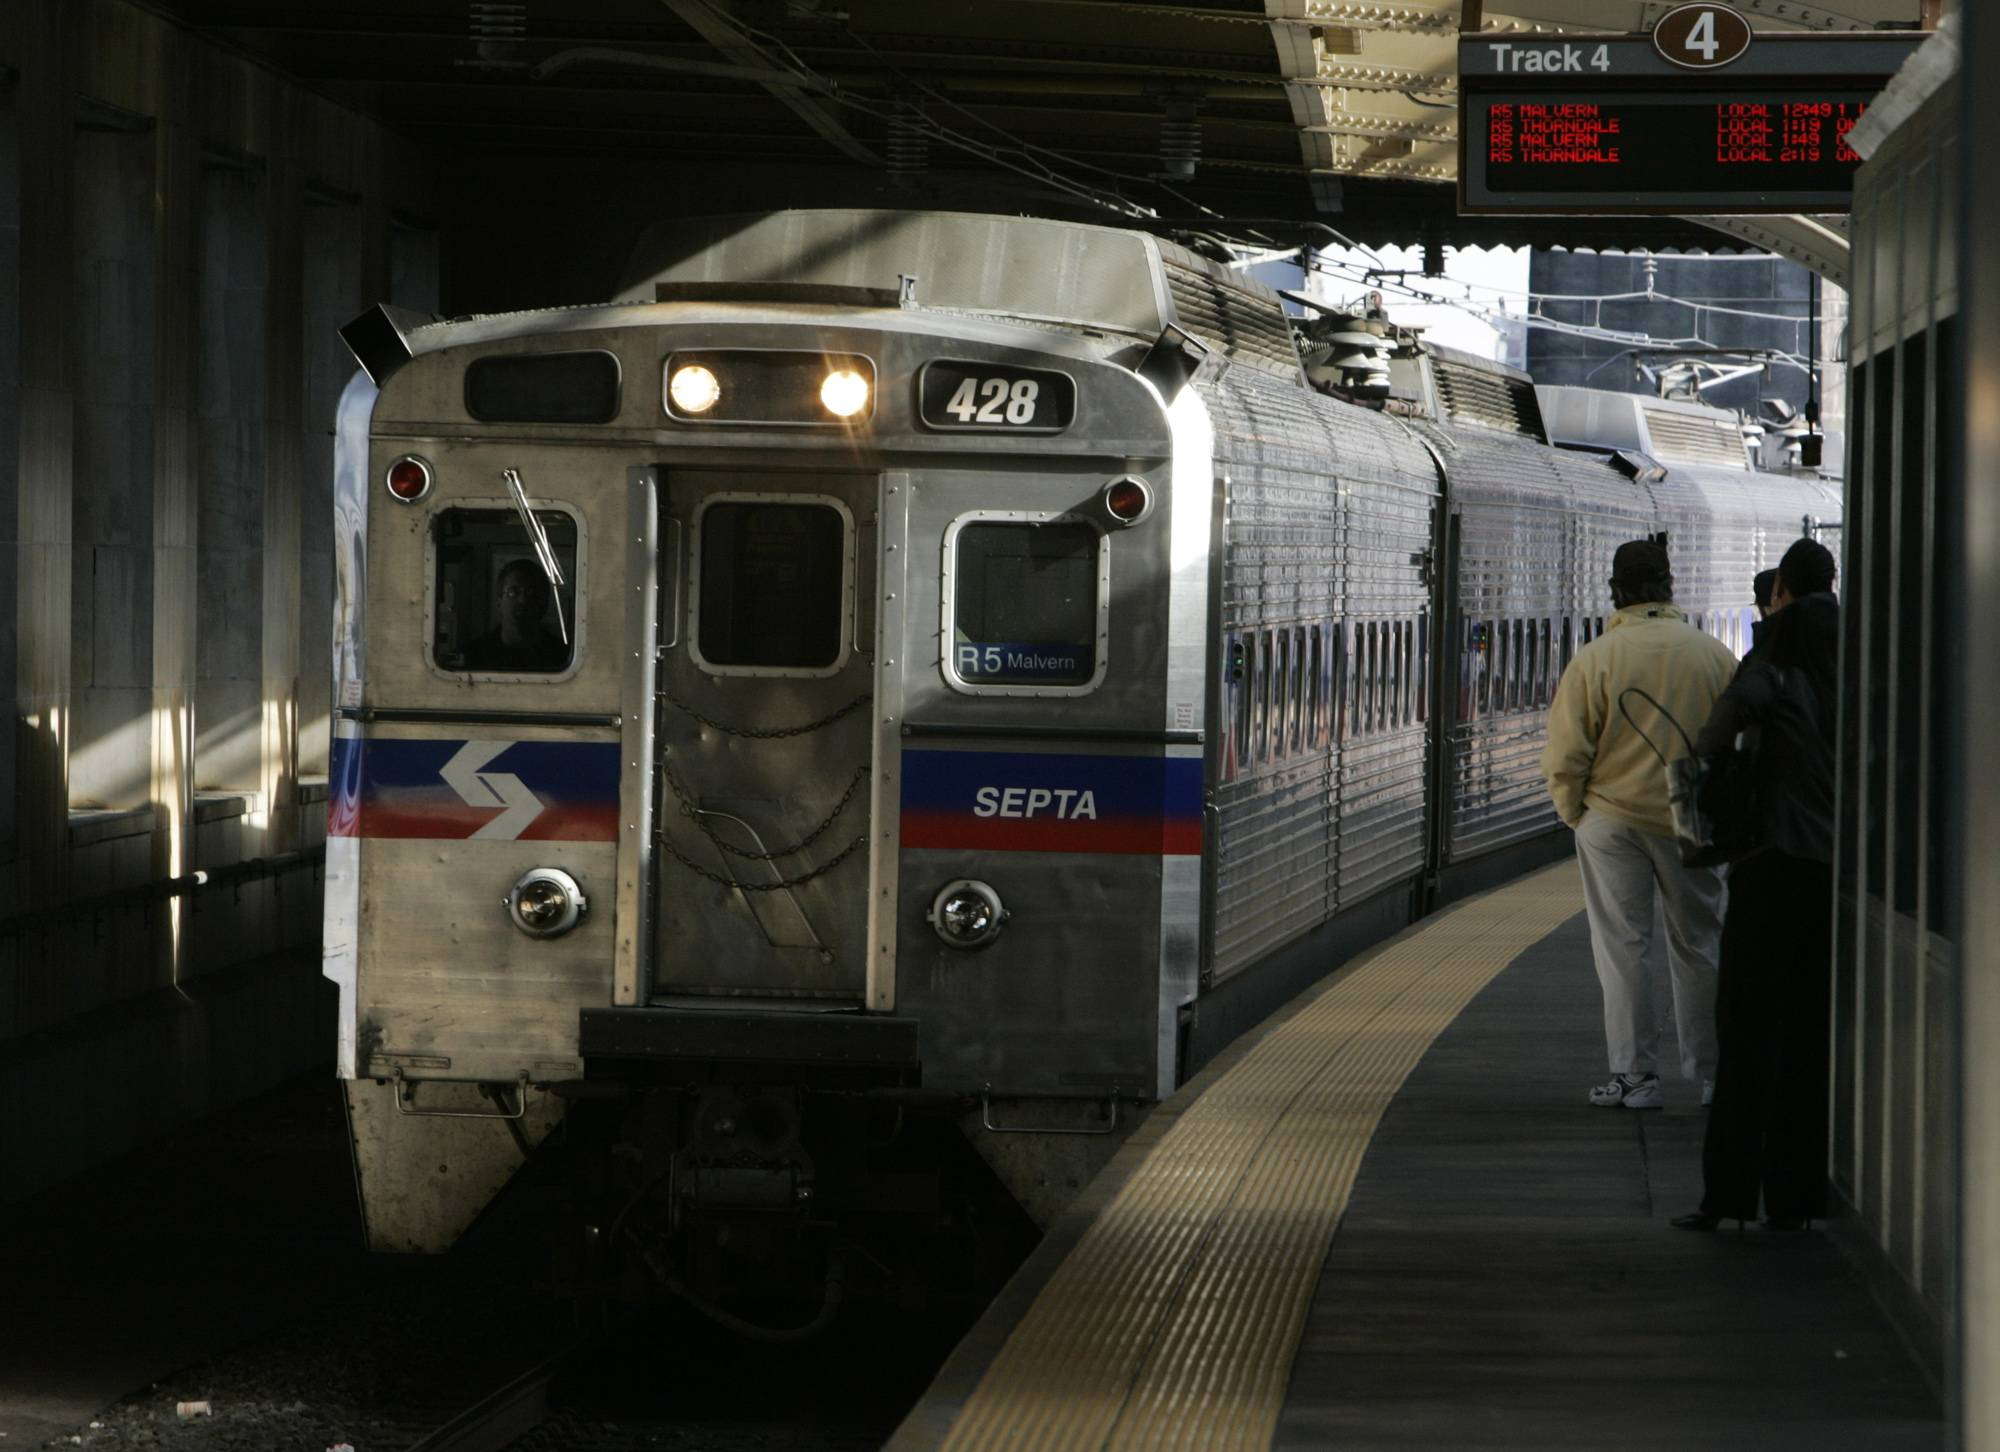 A SEPTA regional train, the R7, rolls into 30th Street station in Philadelphia in this file photo. Four hundred workers at a Philadelphia-area regional rail system went on strike Saturday morning June 14, shutting down 13 train lines that carry commuters to the suburbs and Philadelphia International Airport. Subways, trolleys and buses operated by SEPTA will continue to run.